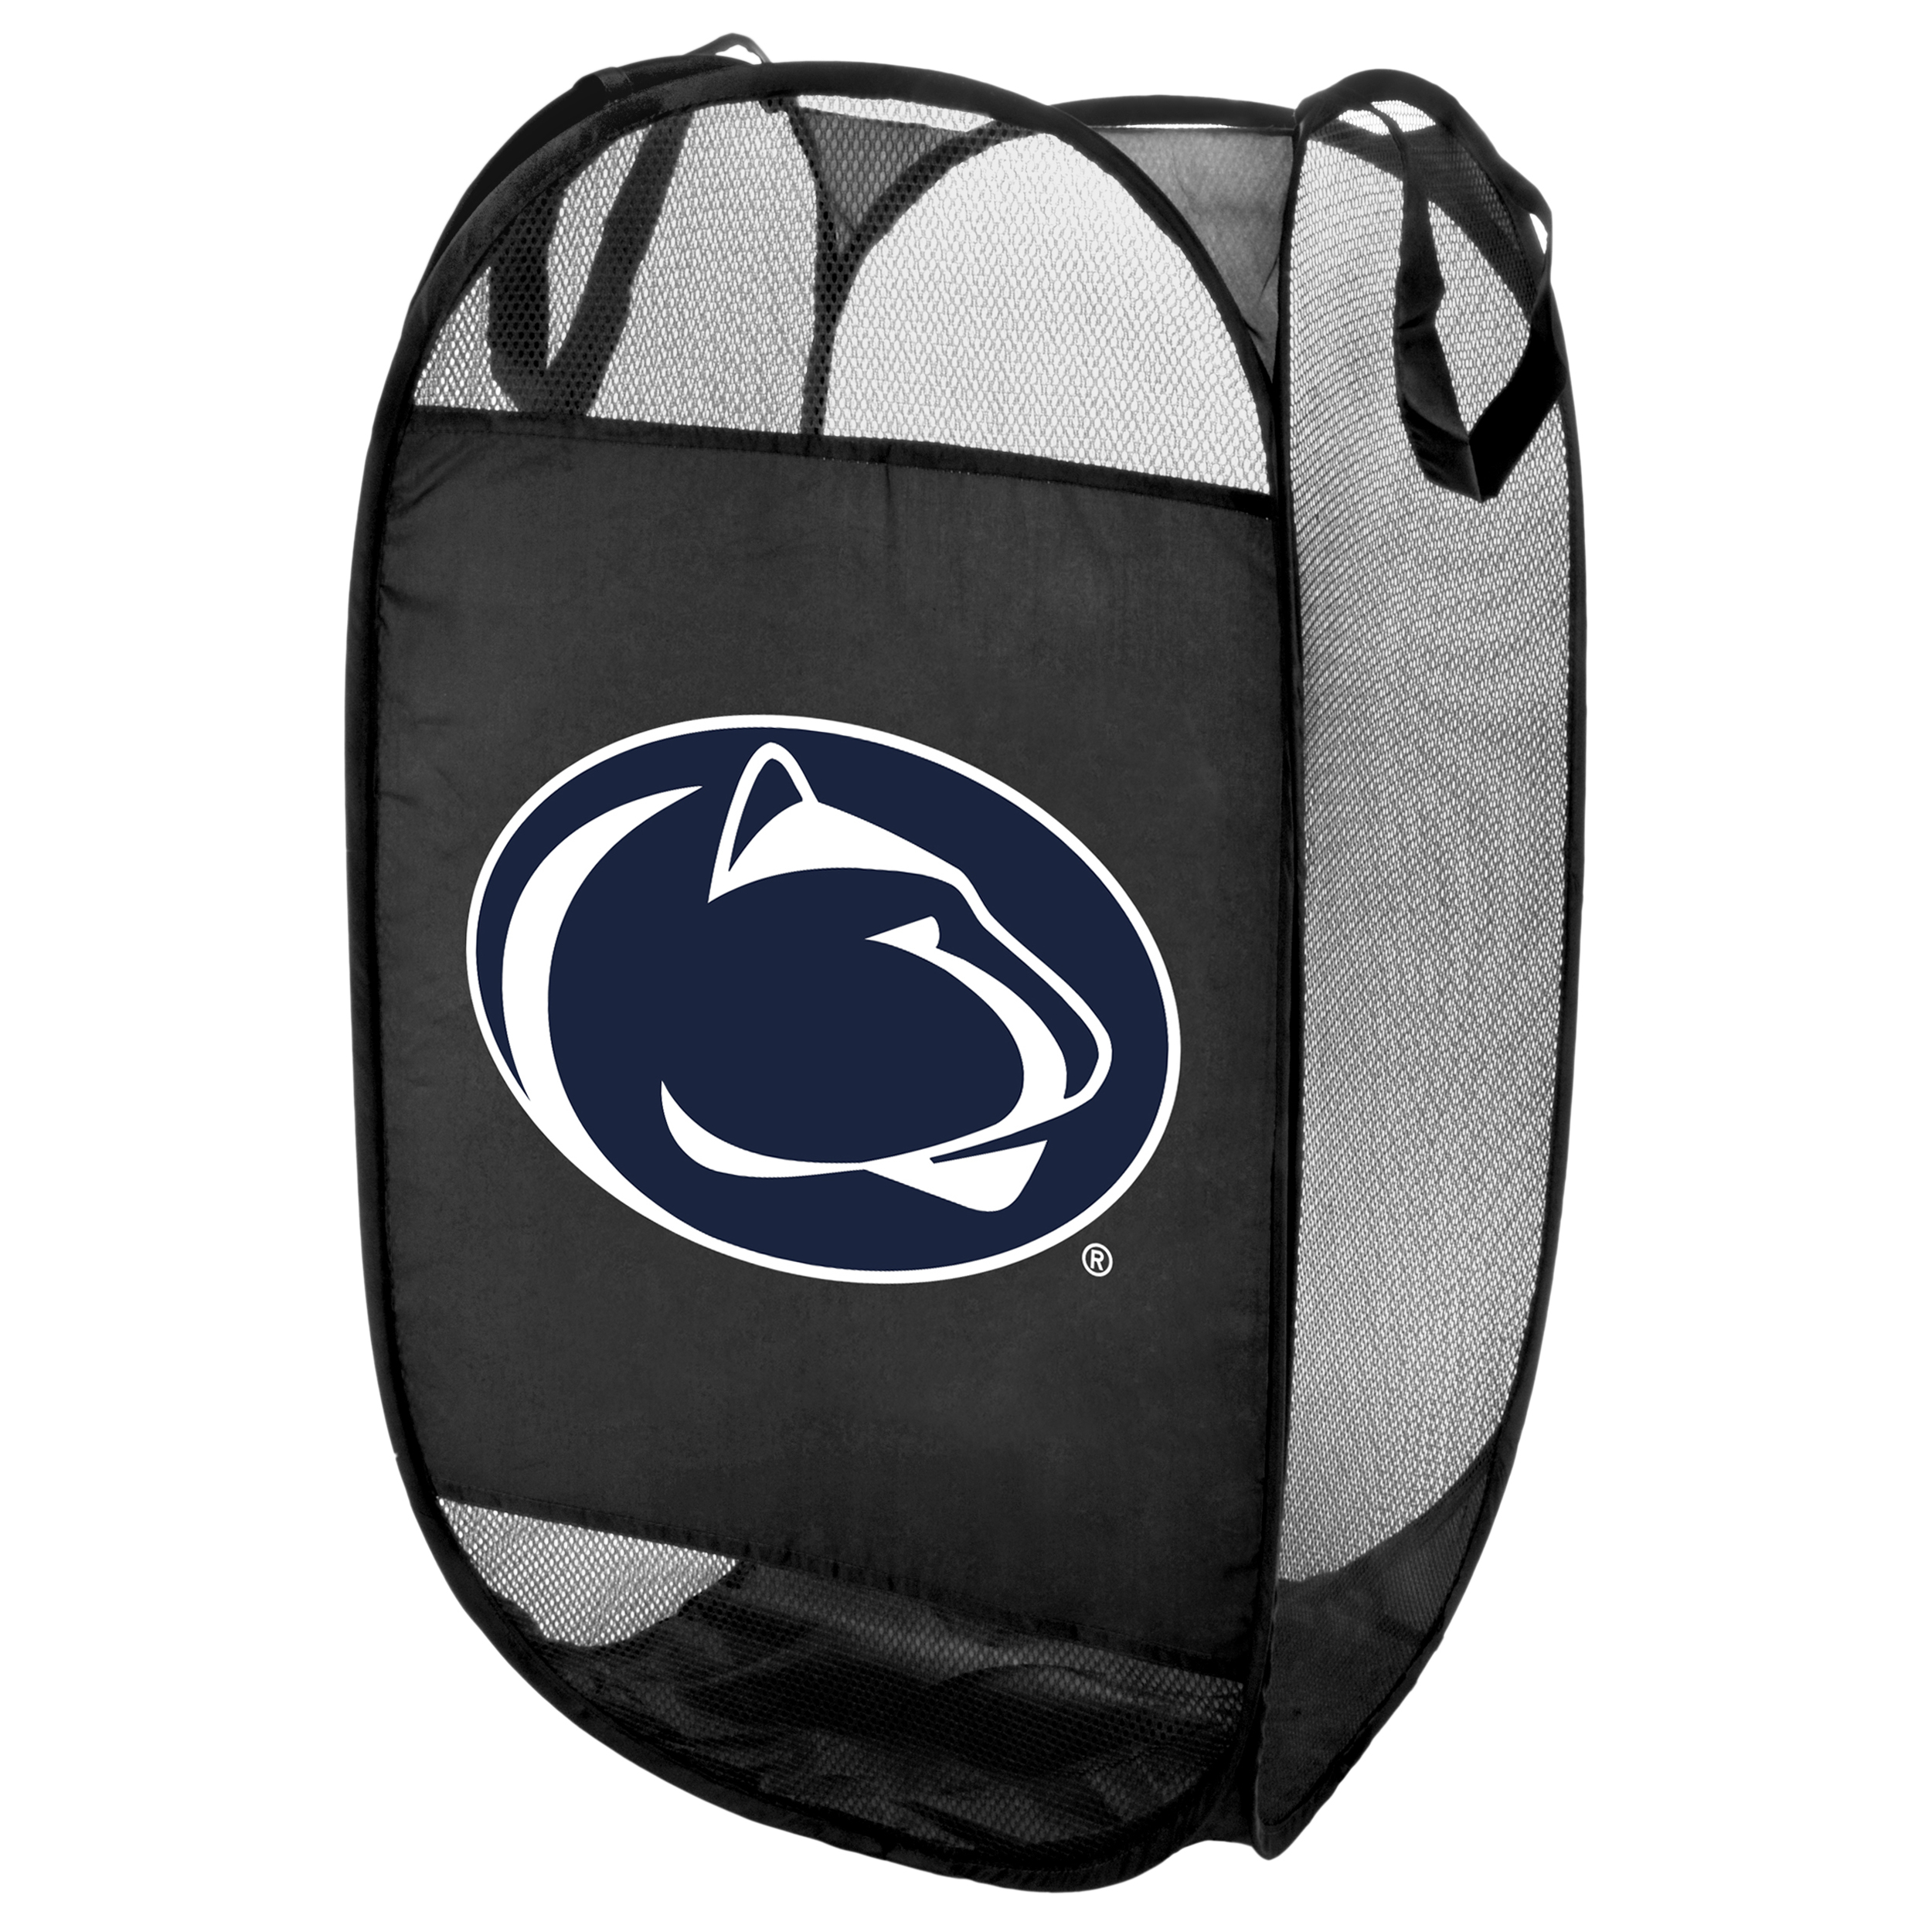 Penn State Nittany Lions Official NCAA Laundry Hamper Fold Up Flip Open by Forever Collectibles 069775